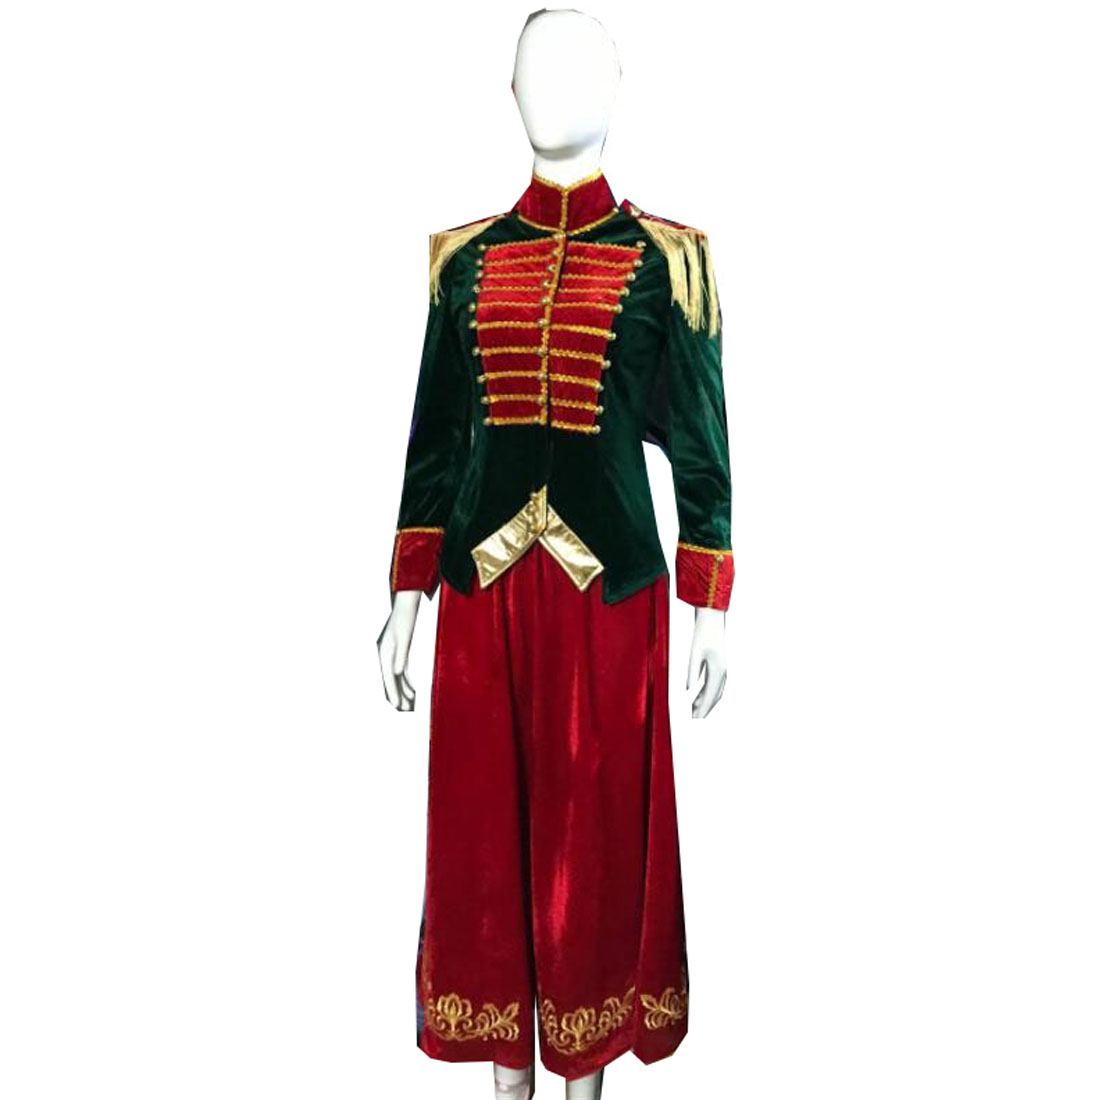 2019 The Nutcracker And The Four Realms Clara Cosplay Costume Adult Women Girls Halloween Carnival Costumes Custom Made